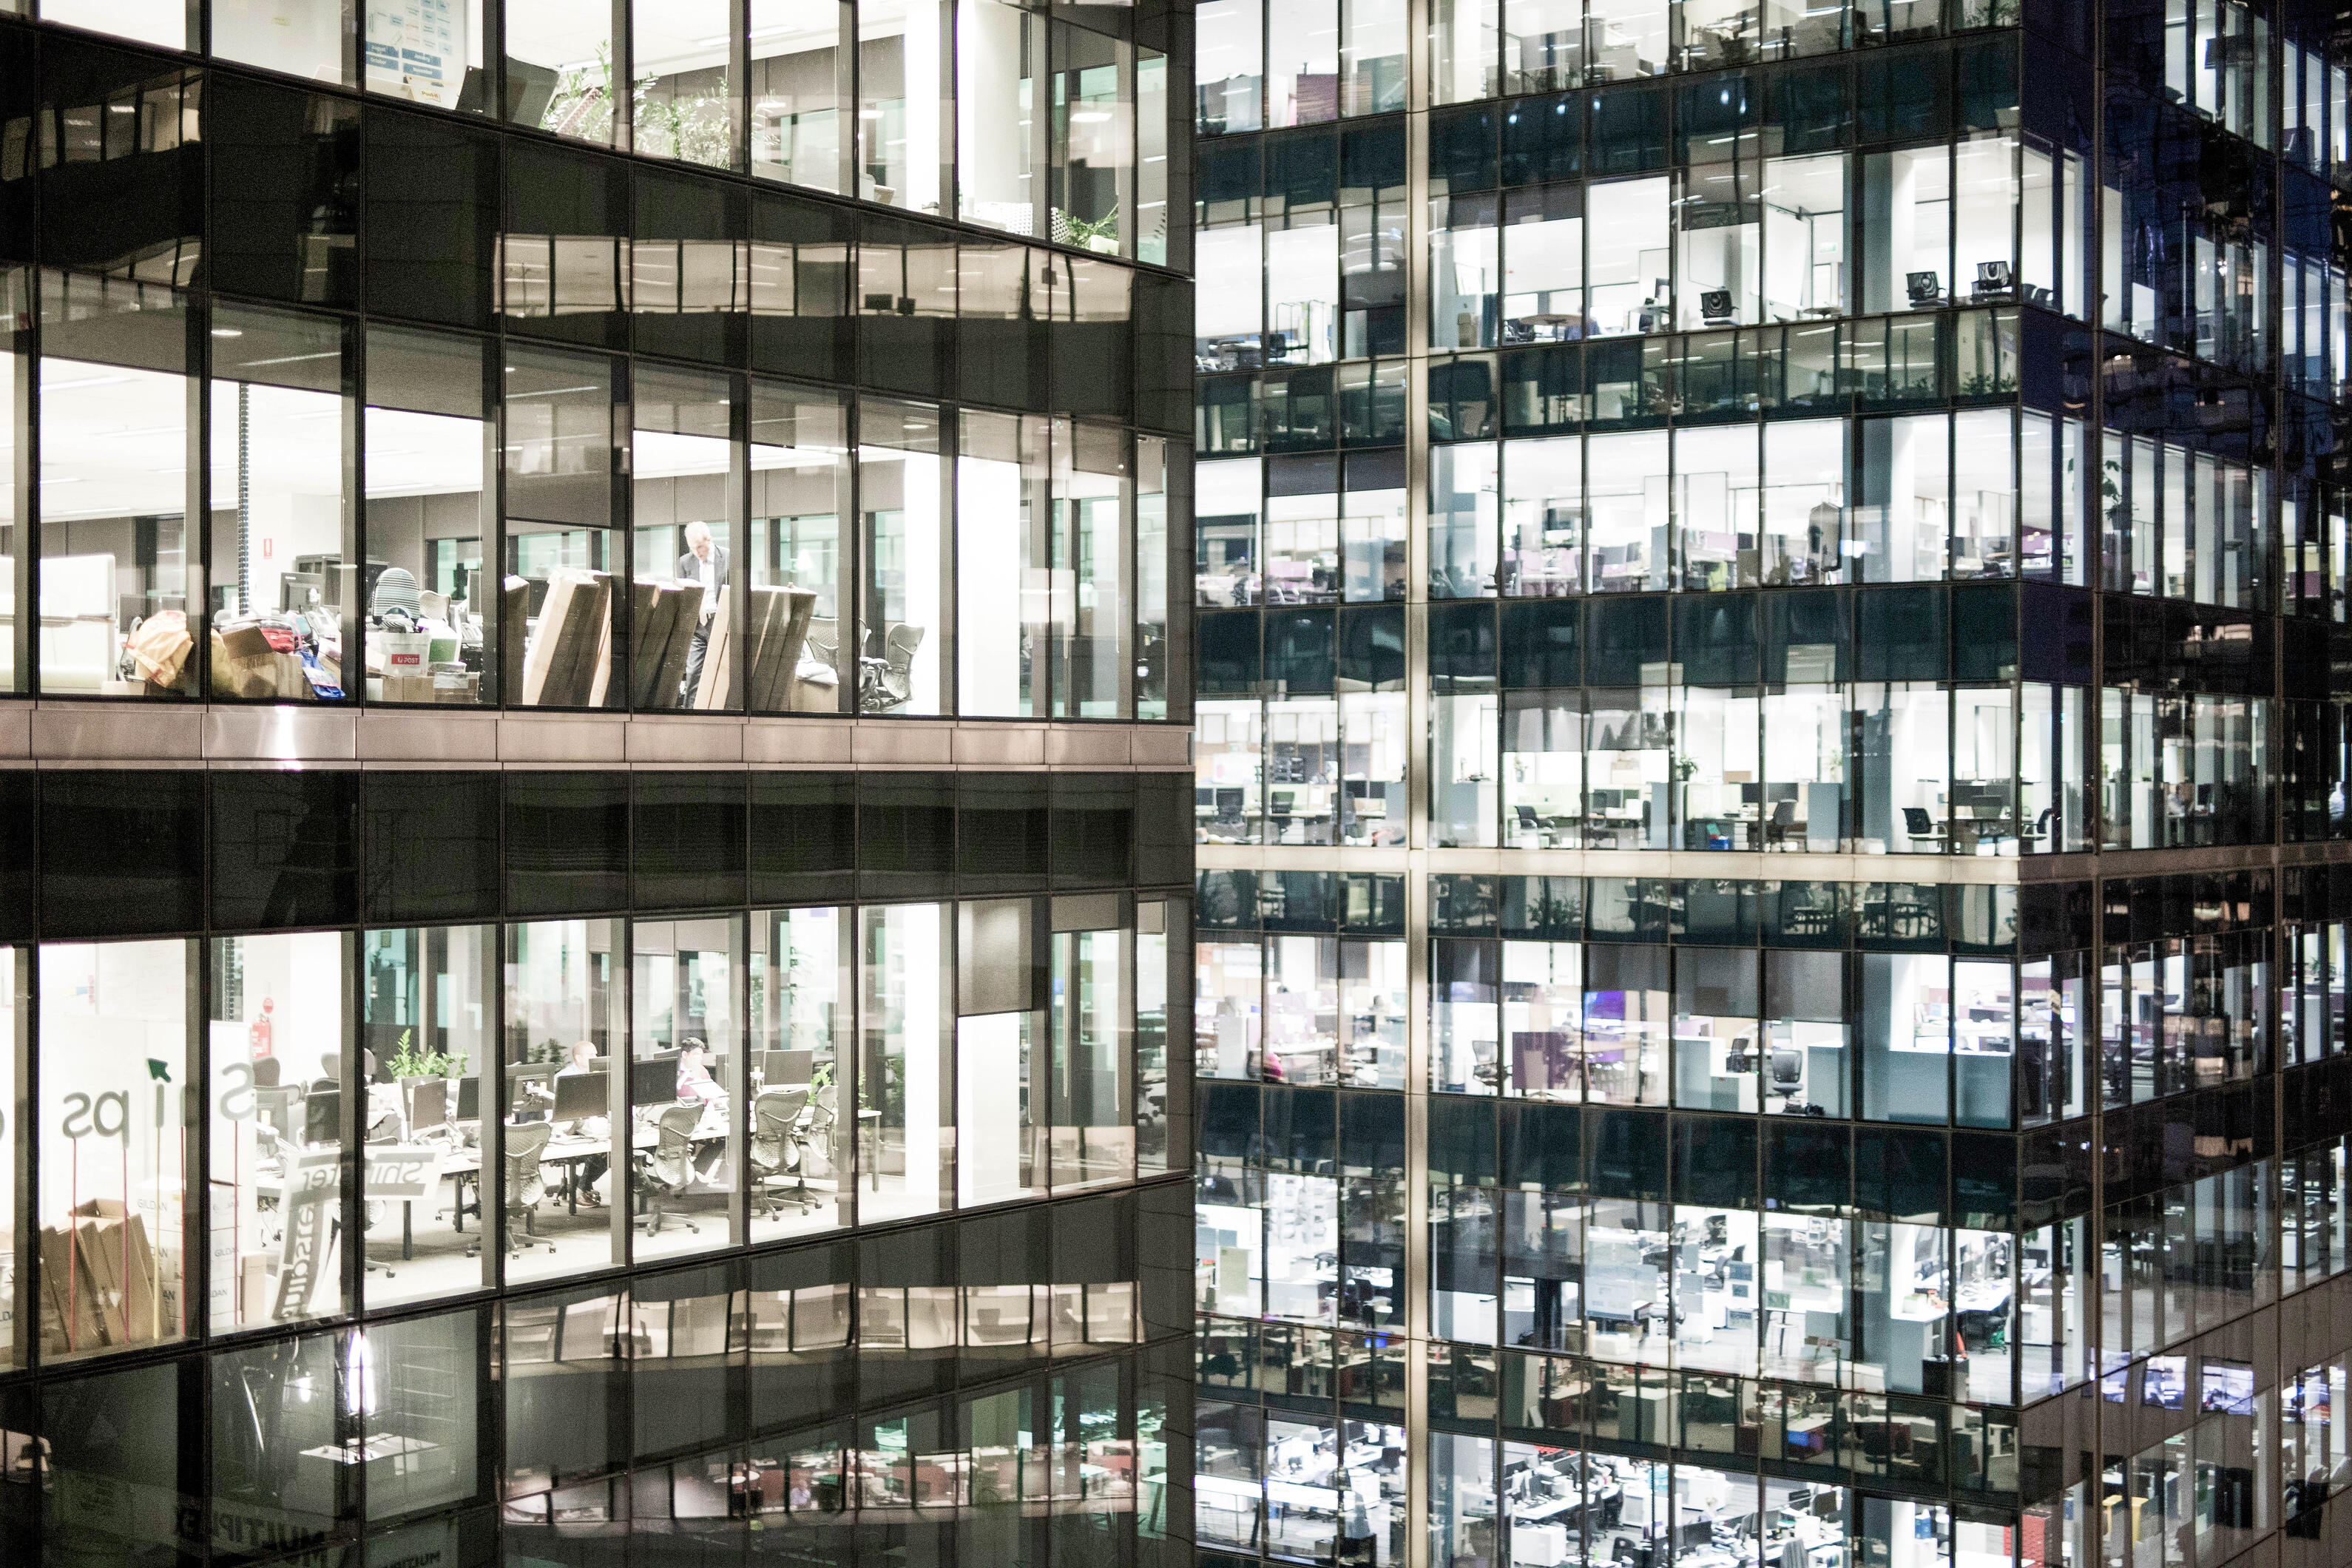 close-up-view-of-office-towers-at-nights-with-the-inside-fitout-business-desks-chairs-visible-bright_t20_xvQxj1